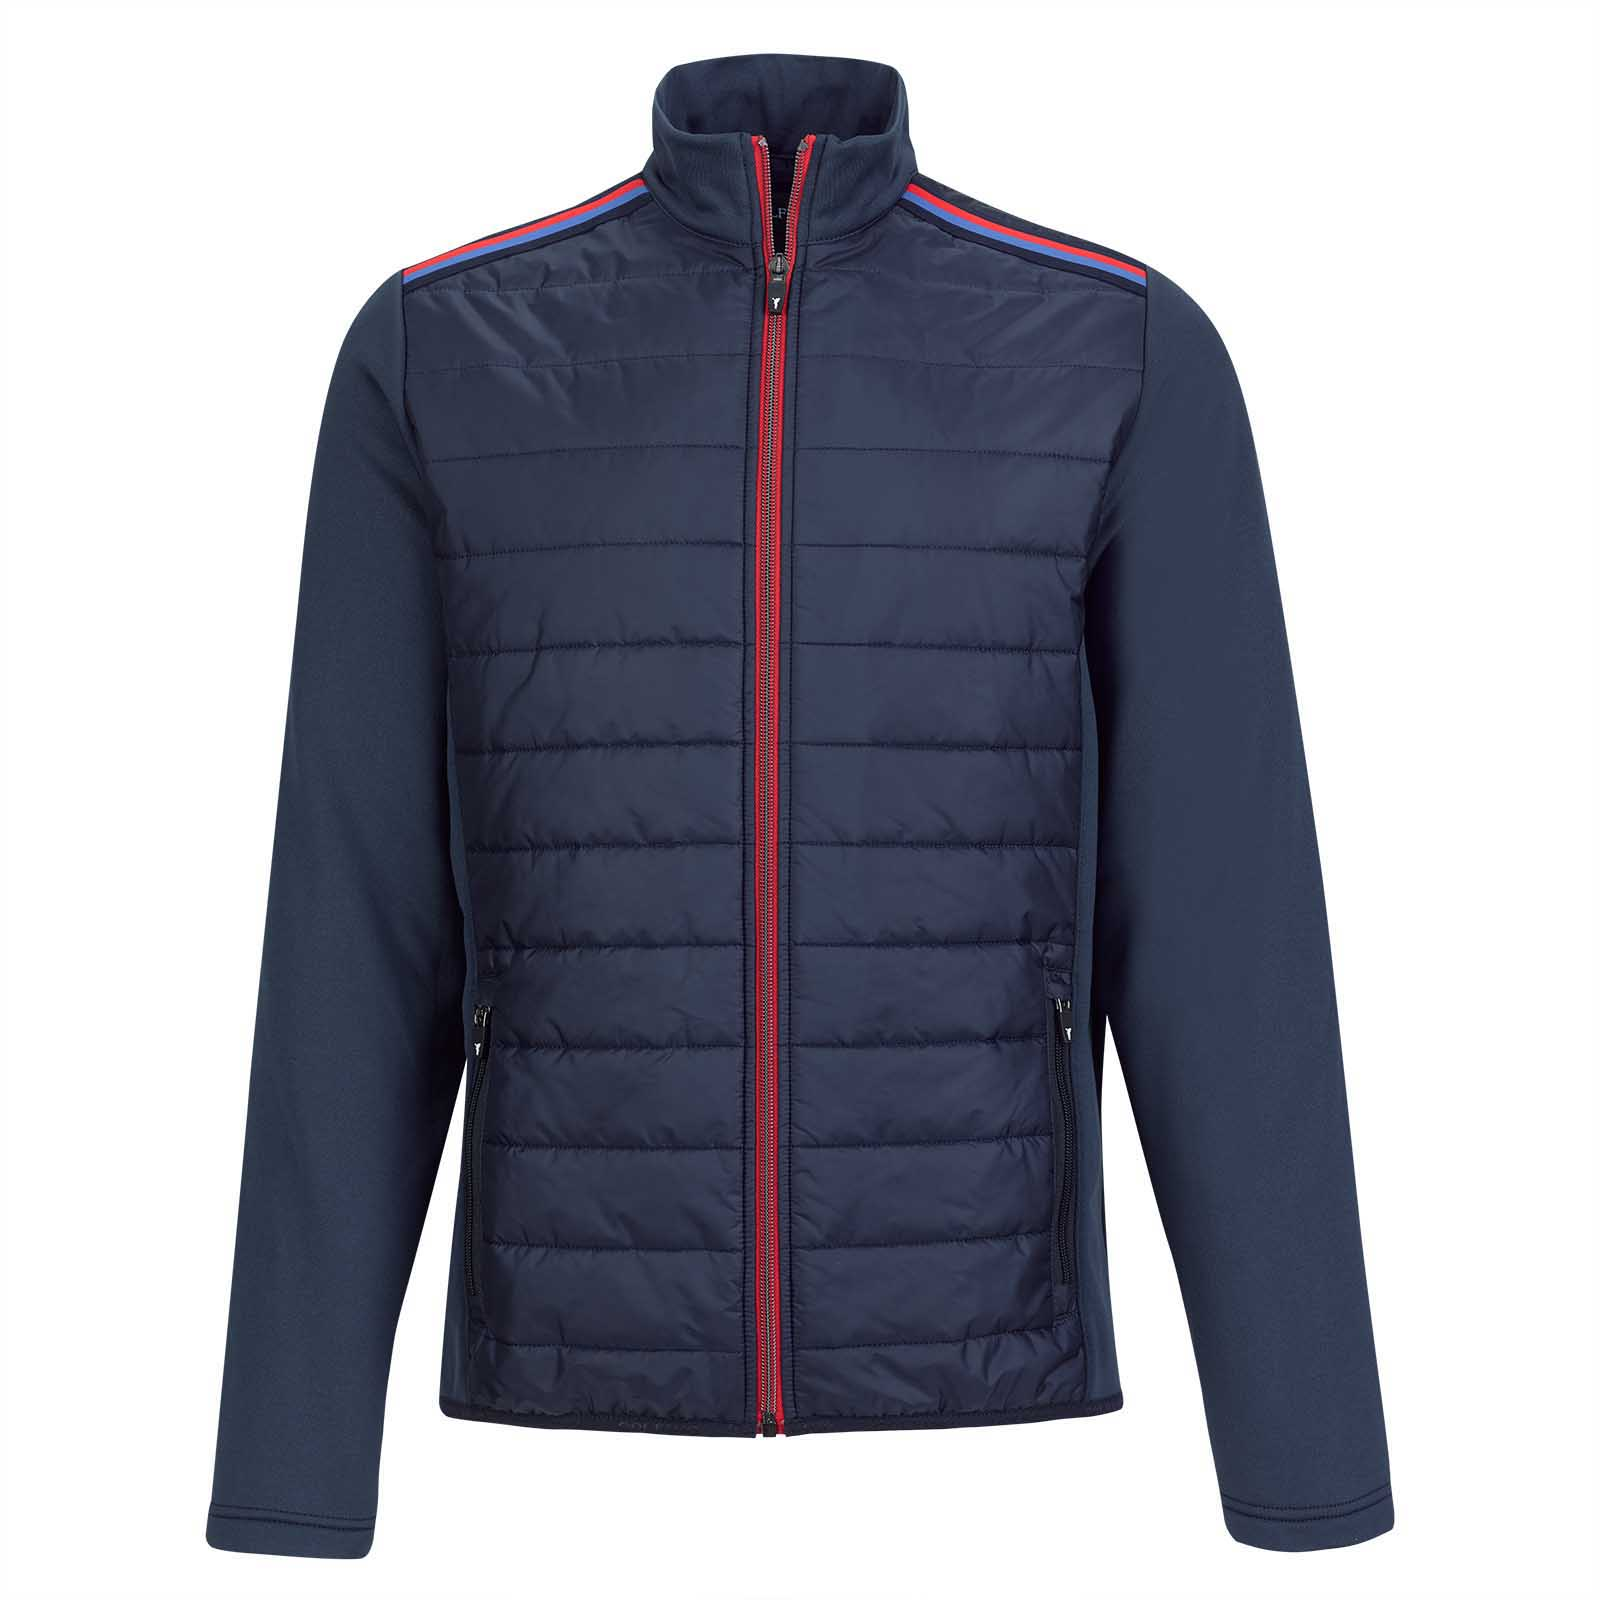 Men's padded hybrid Cold Protection jacket